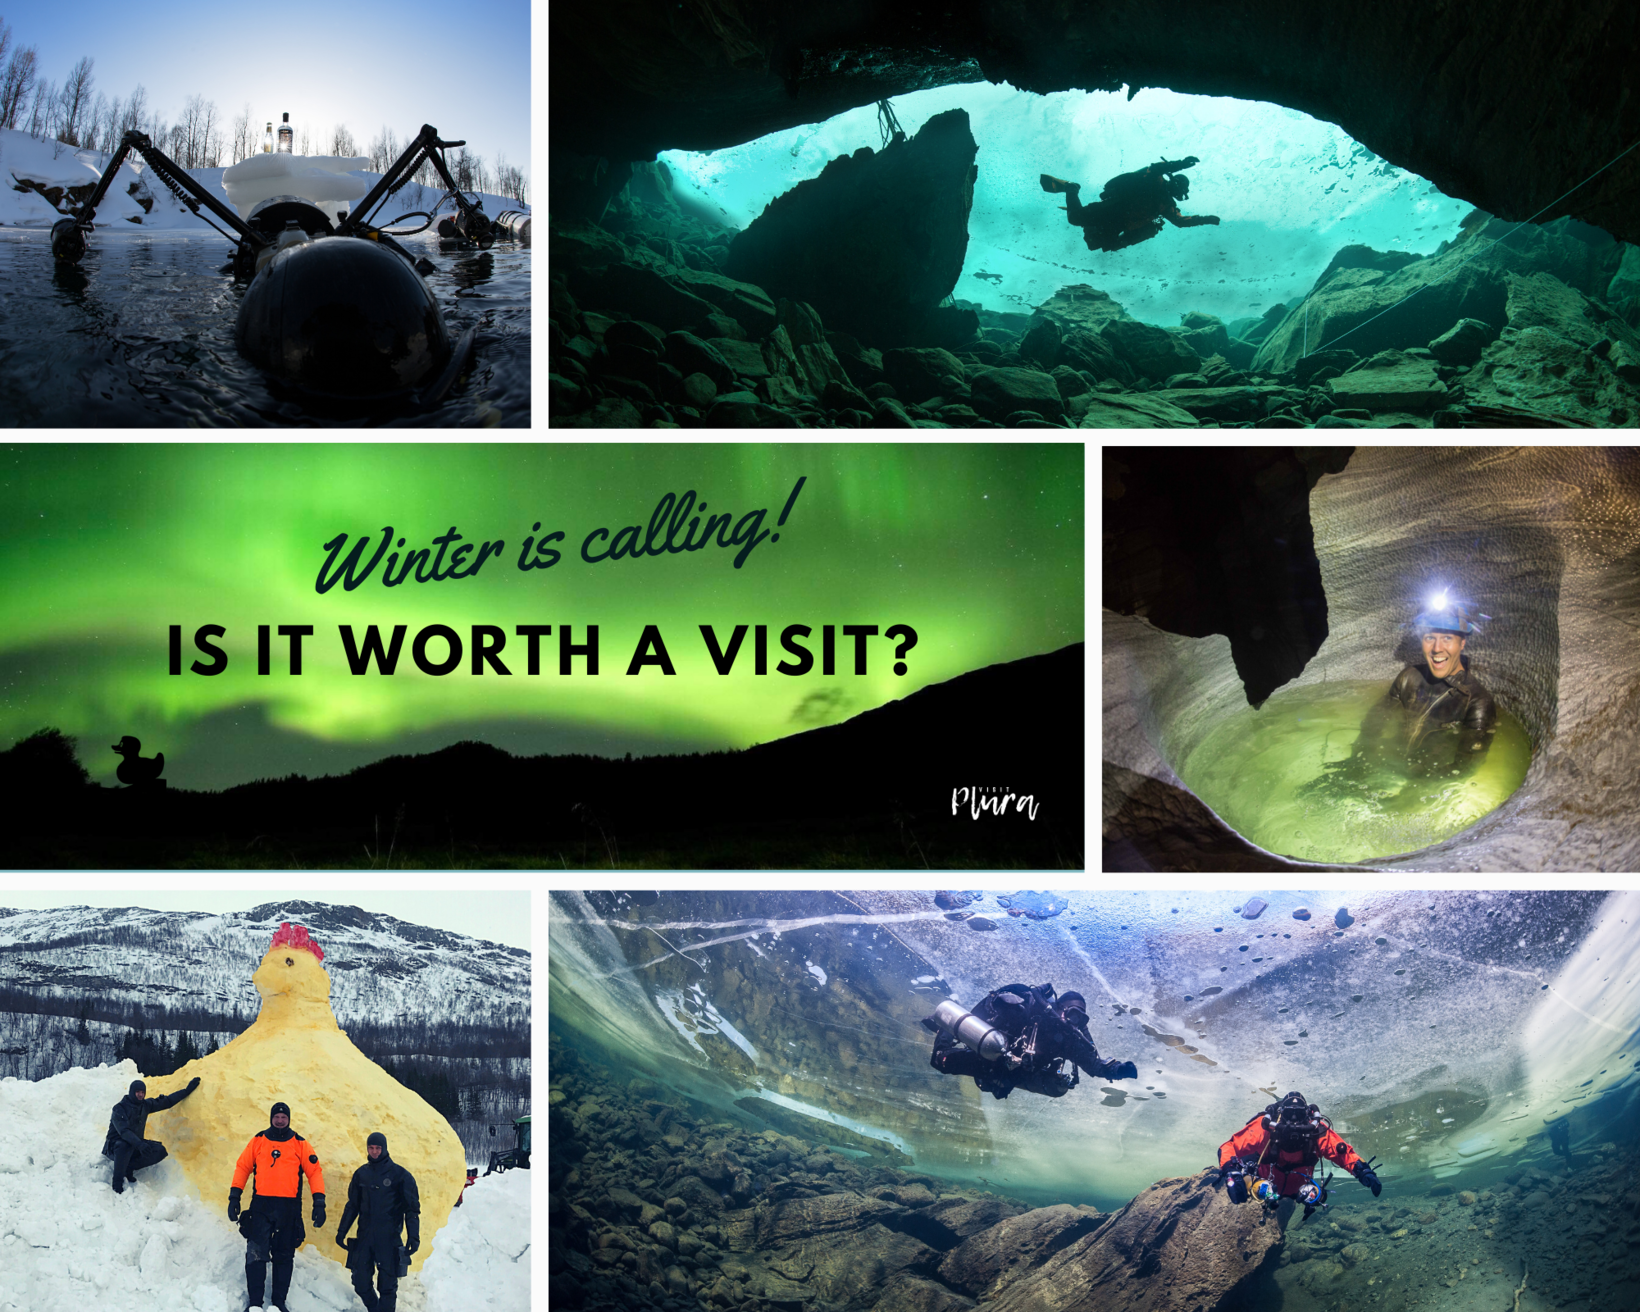 The arctic cave diving experience